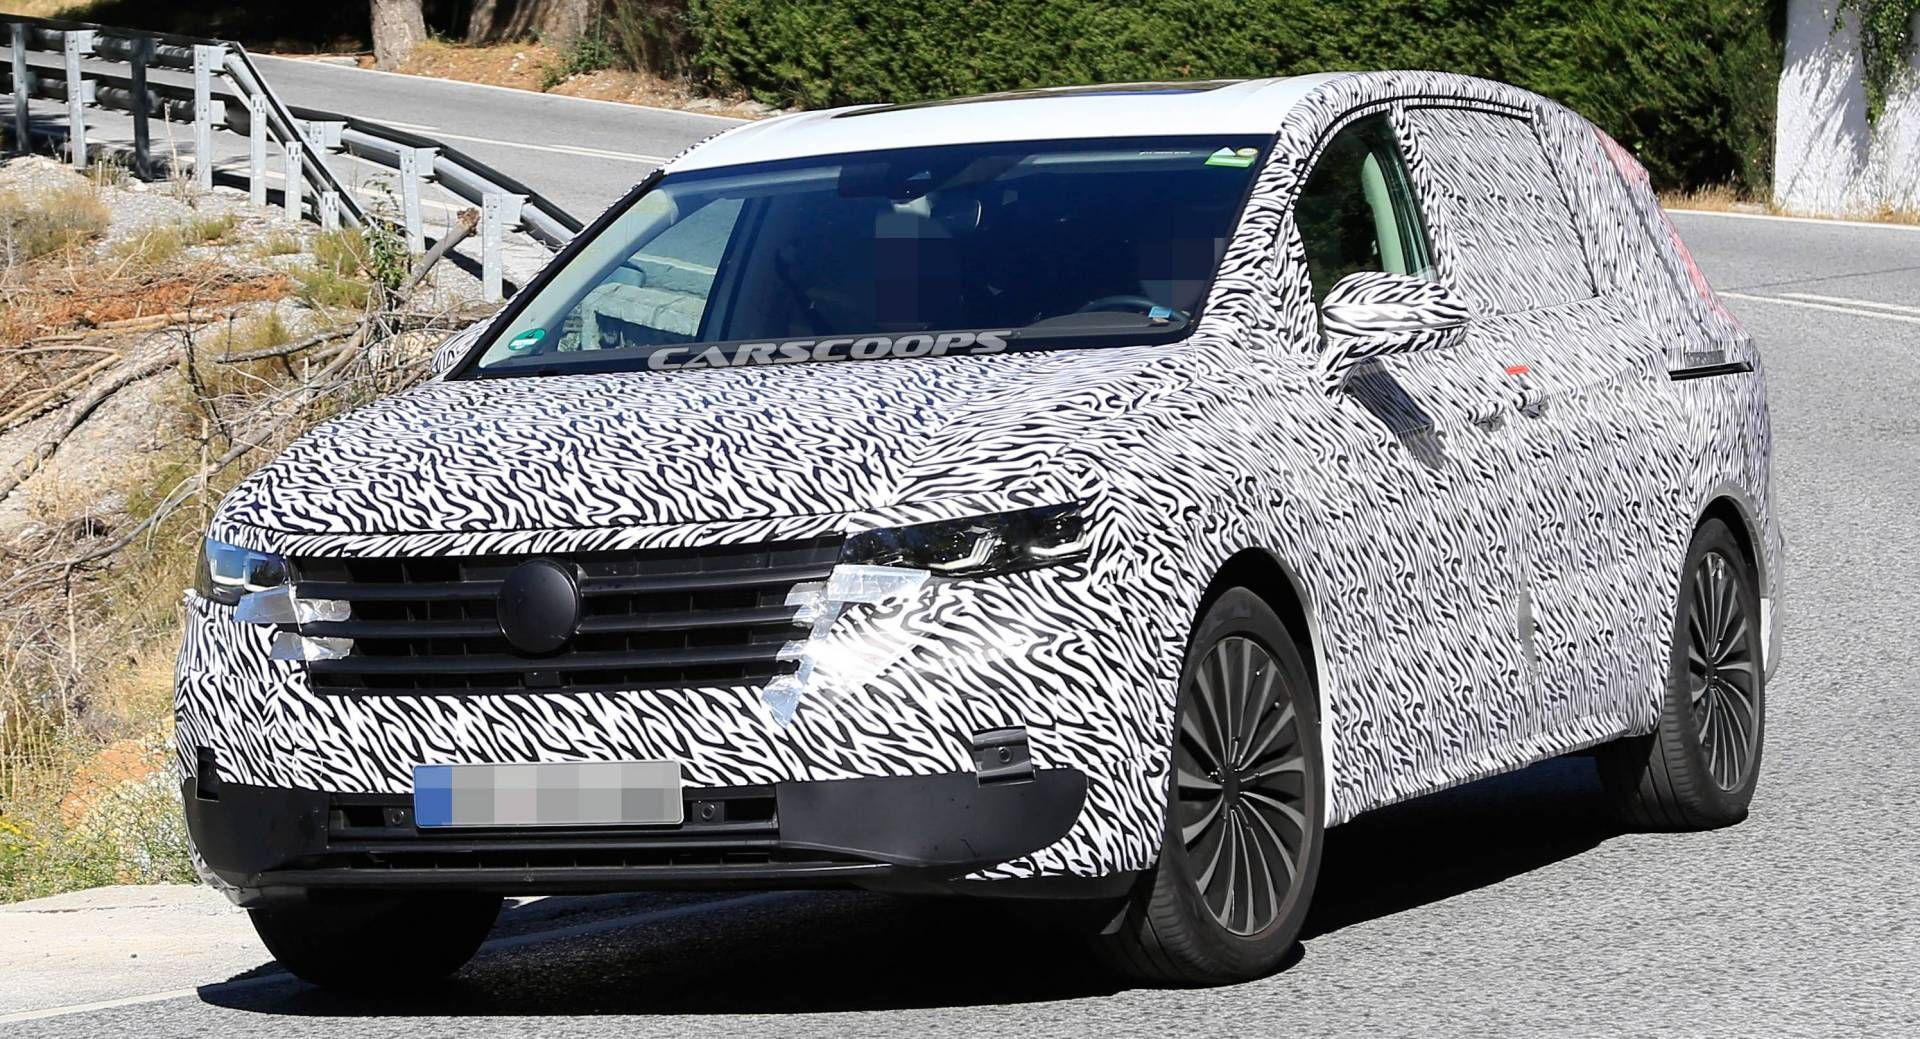 Vw S Massive 2020 Viloran Minivan For China Spotted Testing In